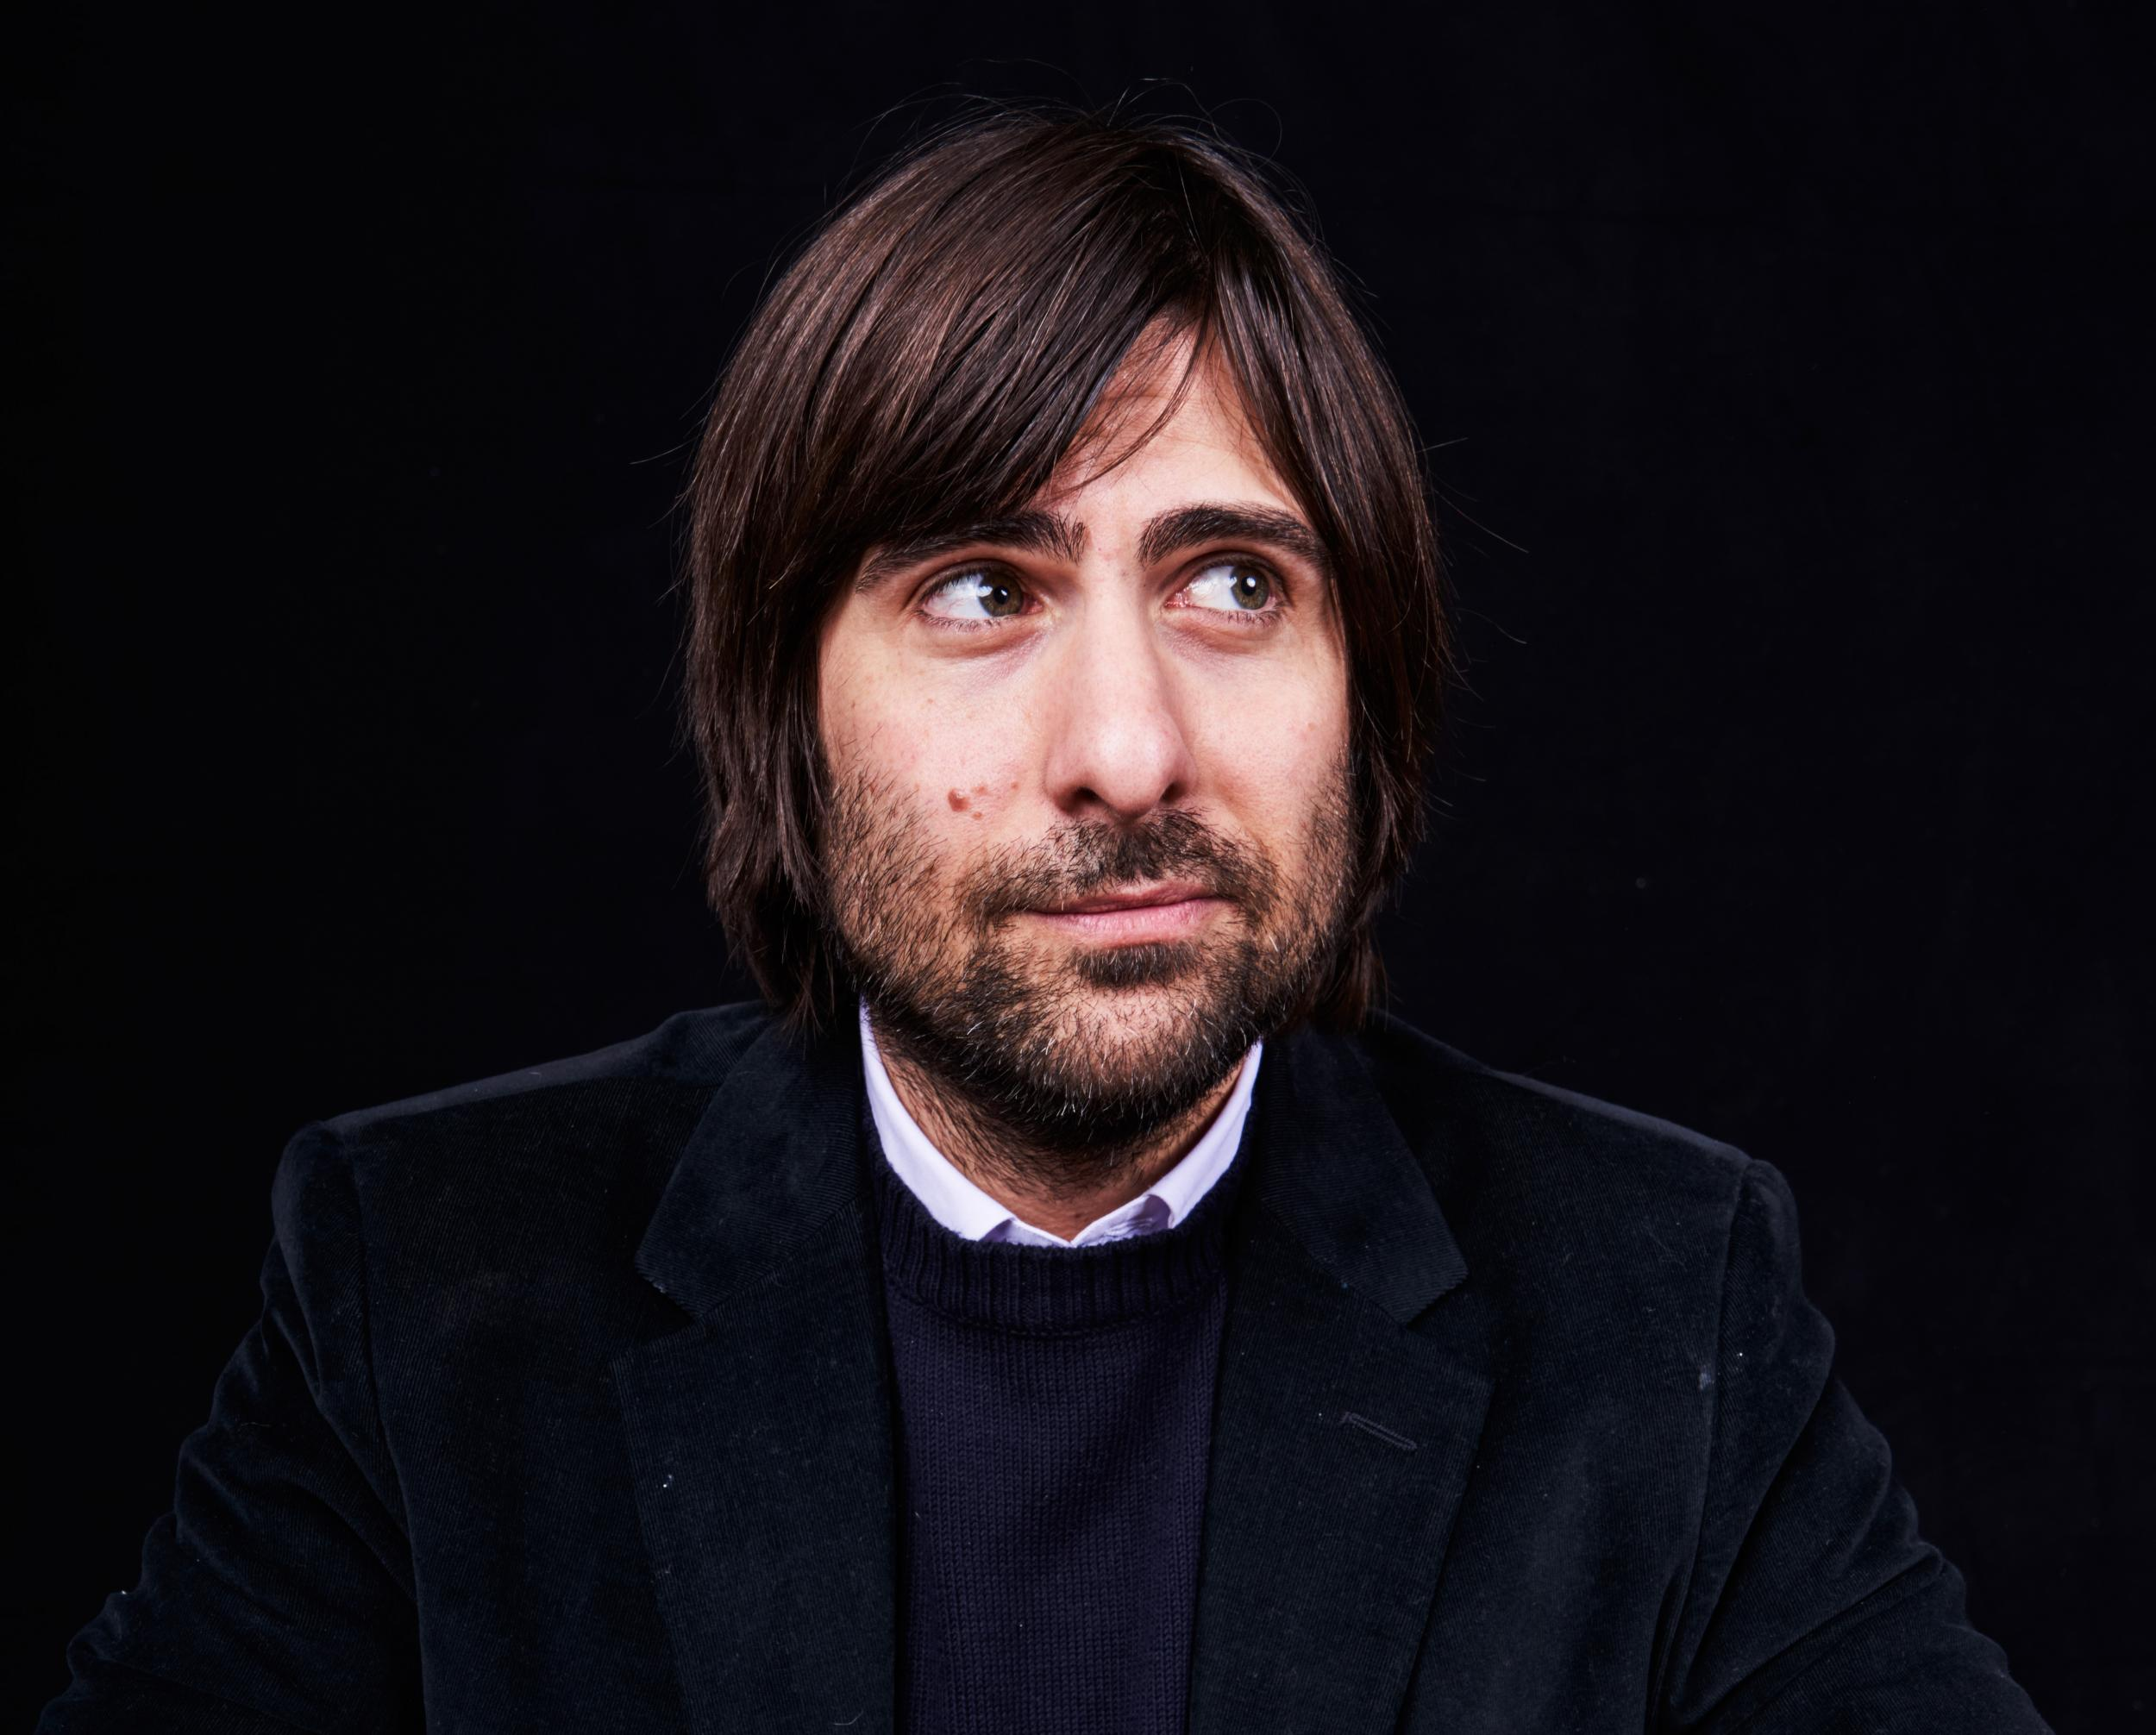 Jason Schwartzman My Uncle Francis Ford Coppola Thinks Marvel Films Are Despicable But I D Be Happy To Act In One The Independent The Independent